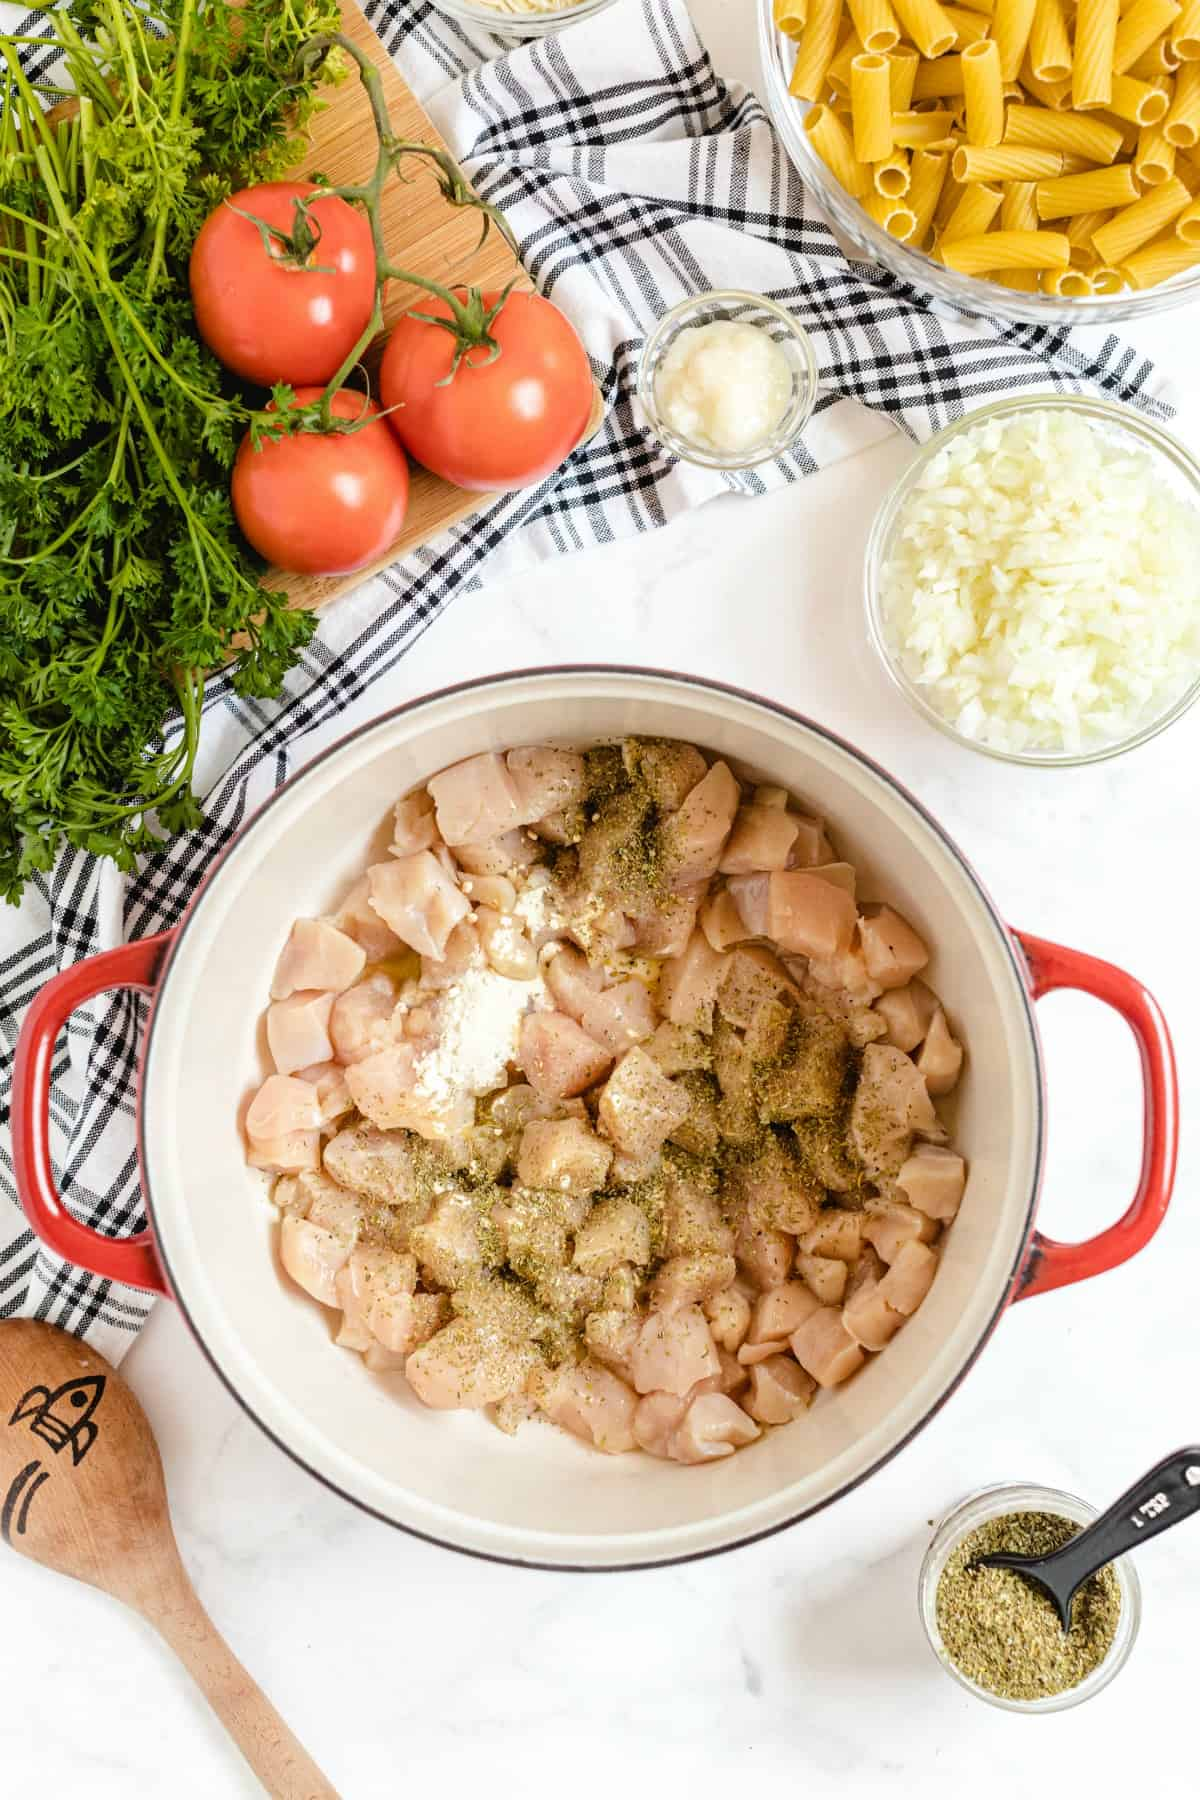 raw chicken in dutch oven